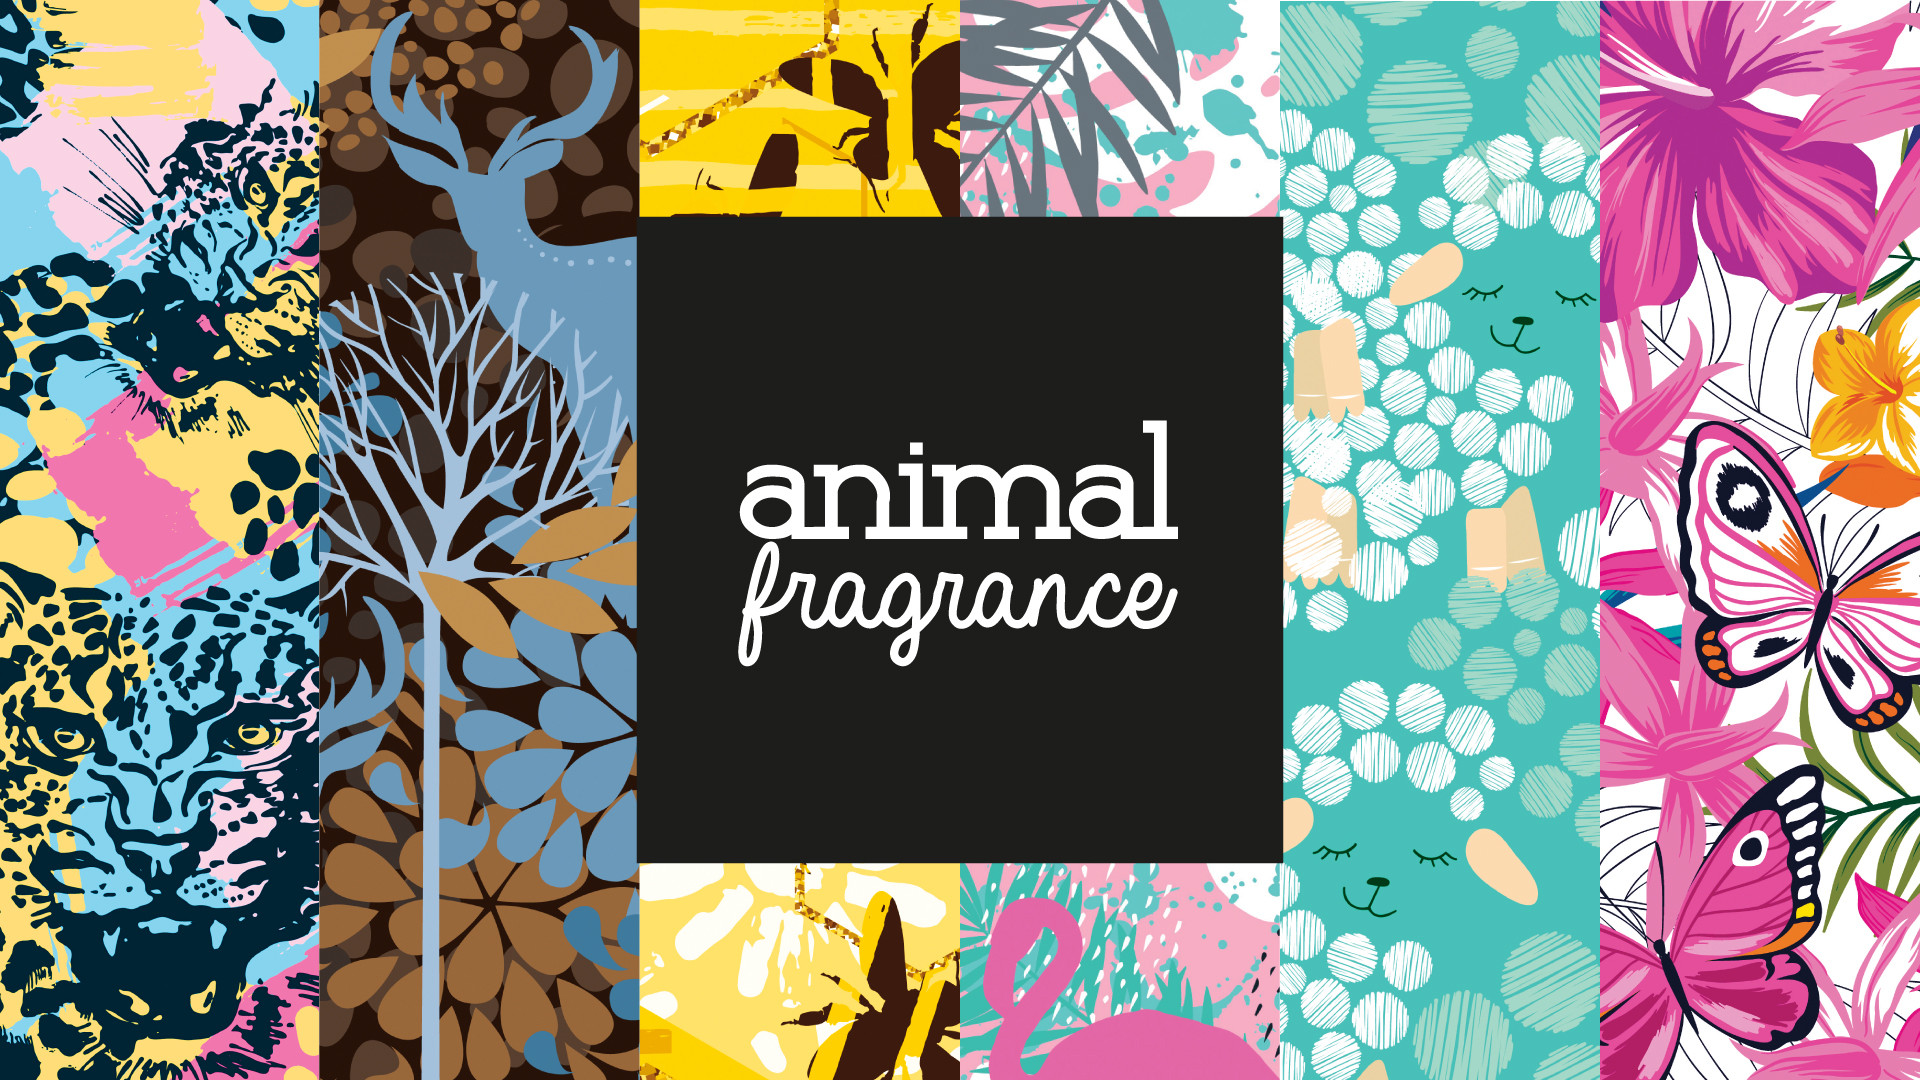 1920x1080_animal-fragrance_banner-istituzionale.jpg